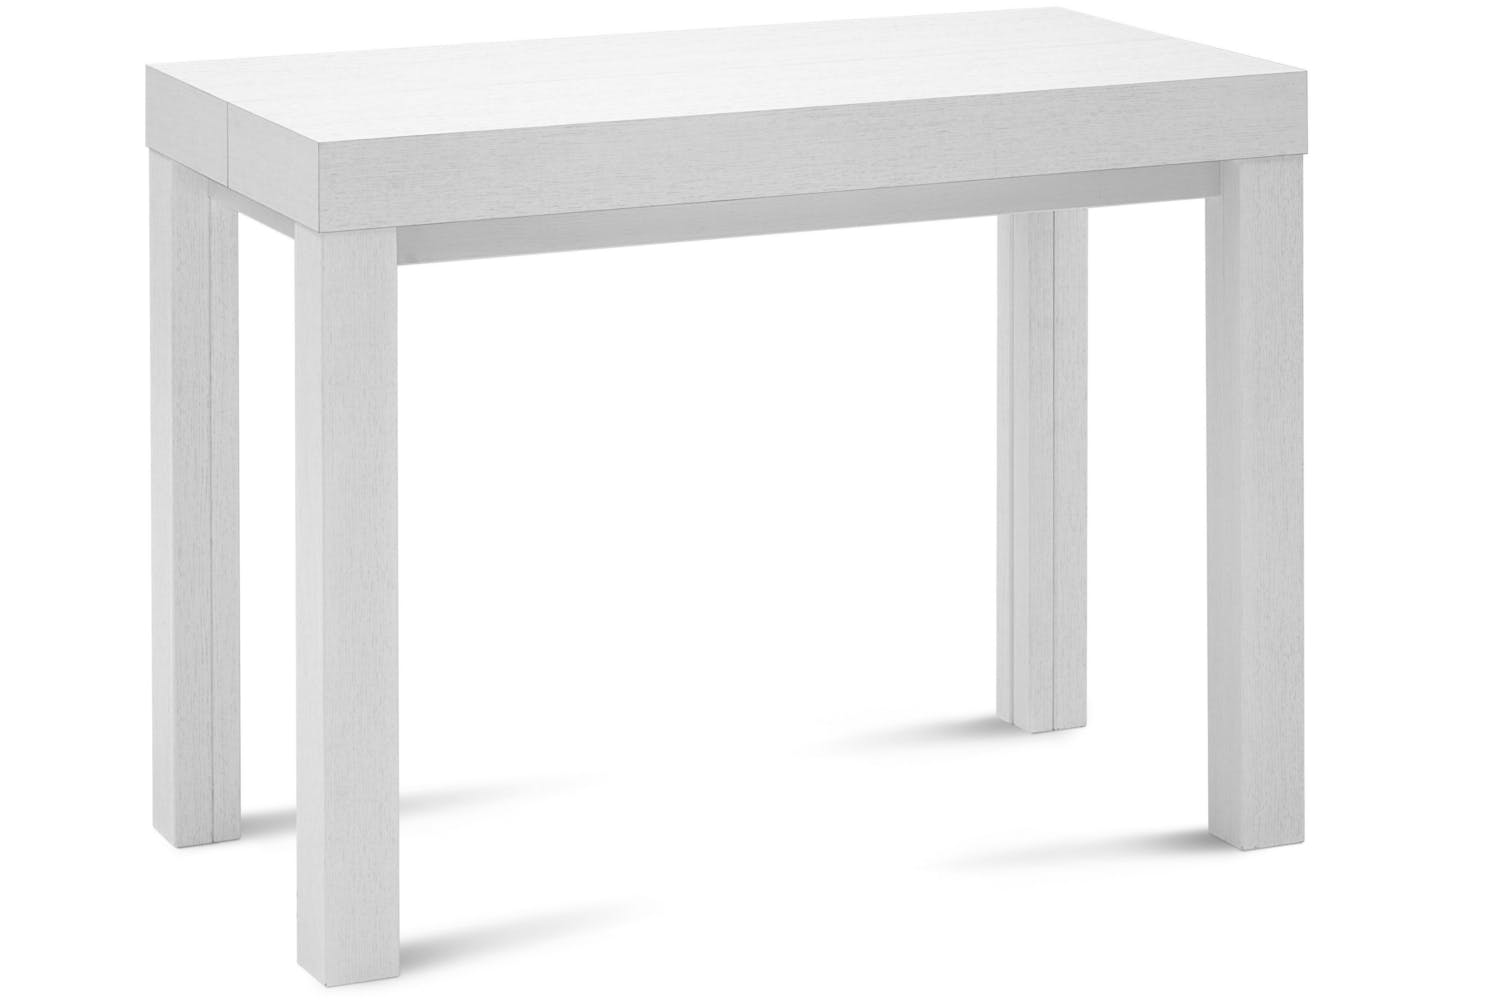 Cosmo extending console table white ireland cosmo extending console table white geotapseo Images